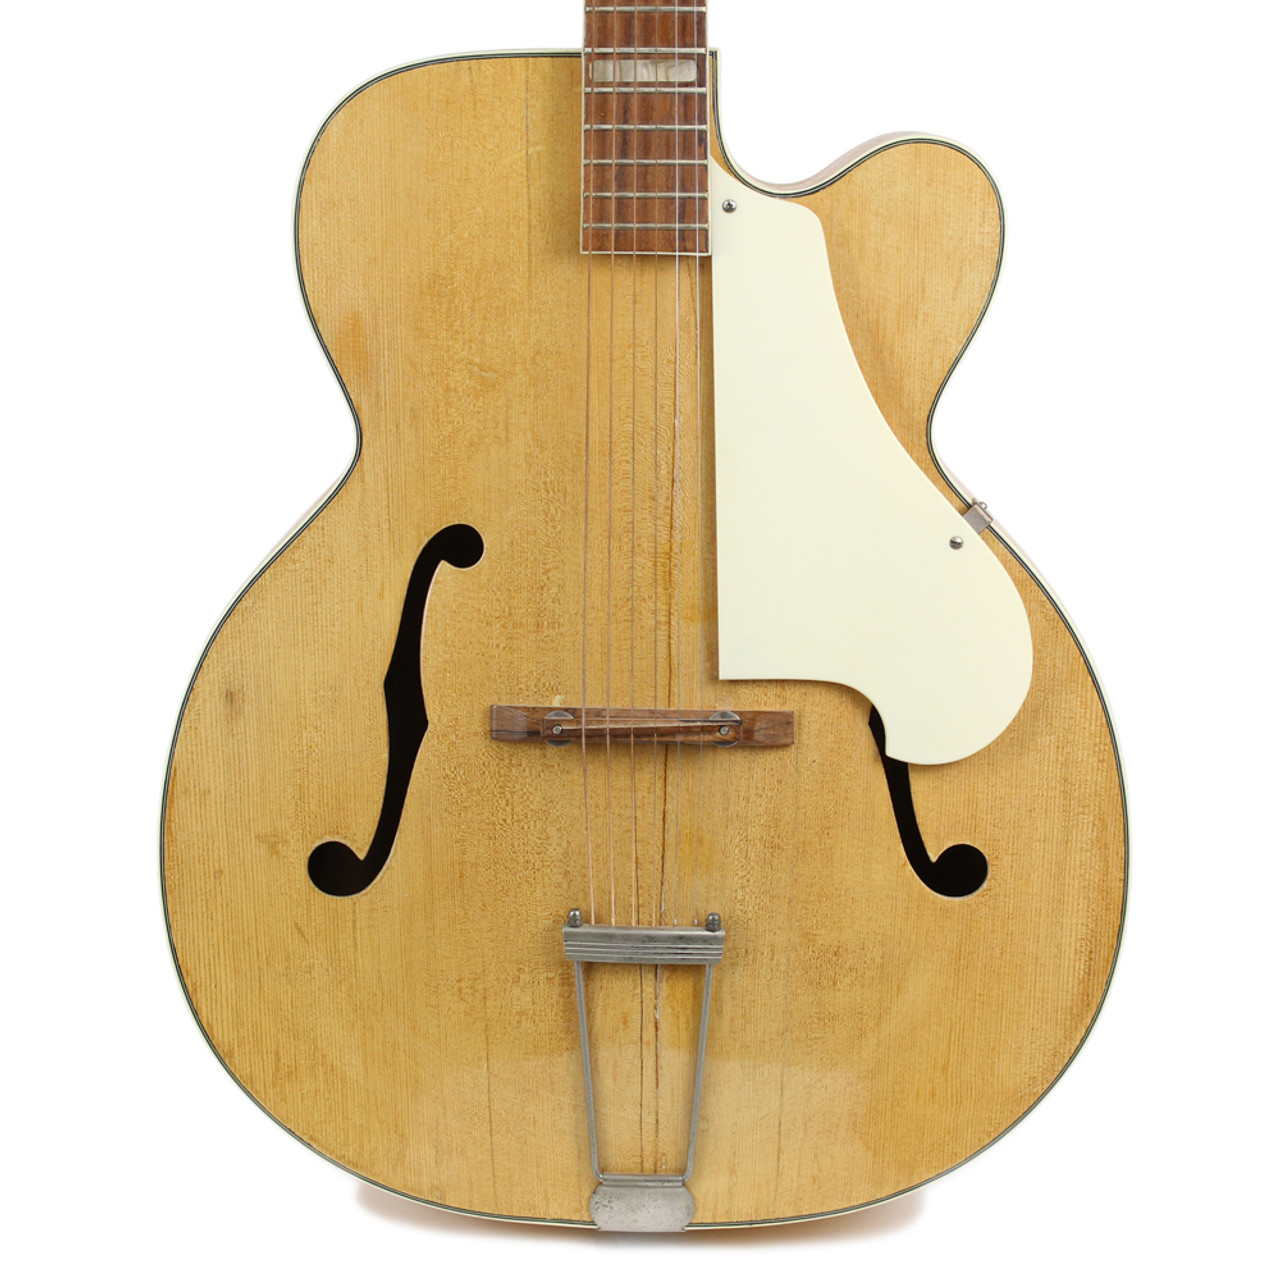 Vintage Carvin Archtop Acoustic Guitar In Natural Cream City Music